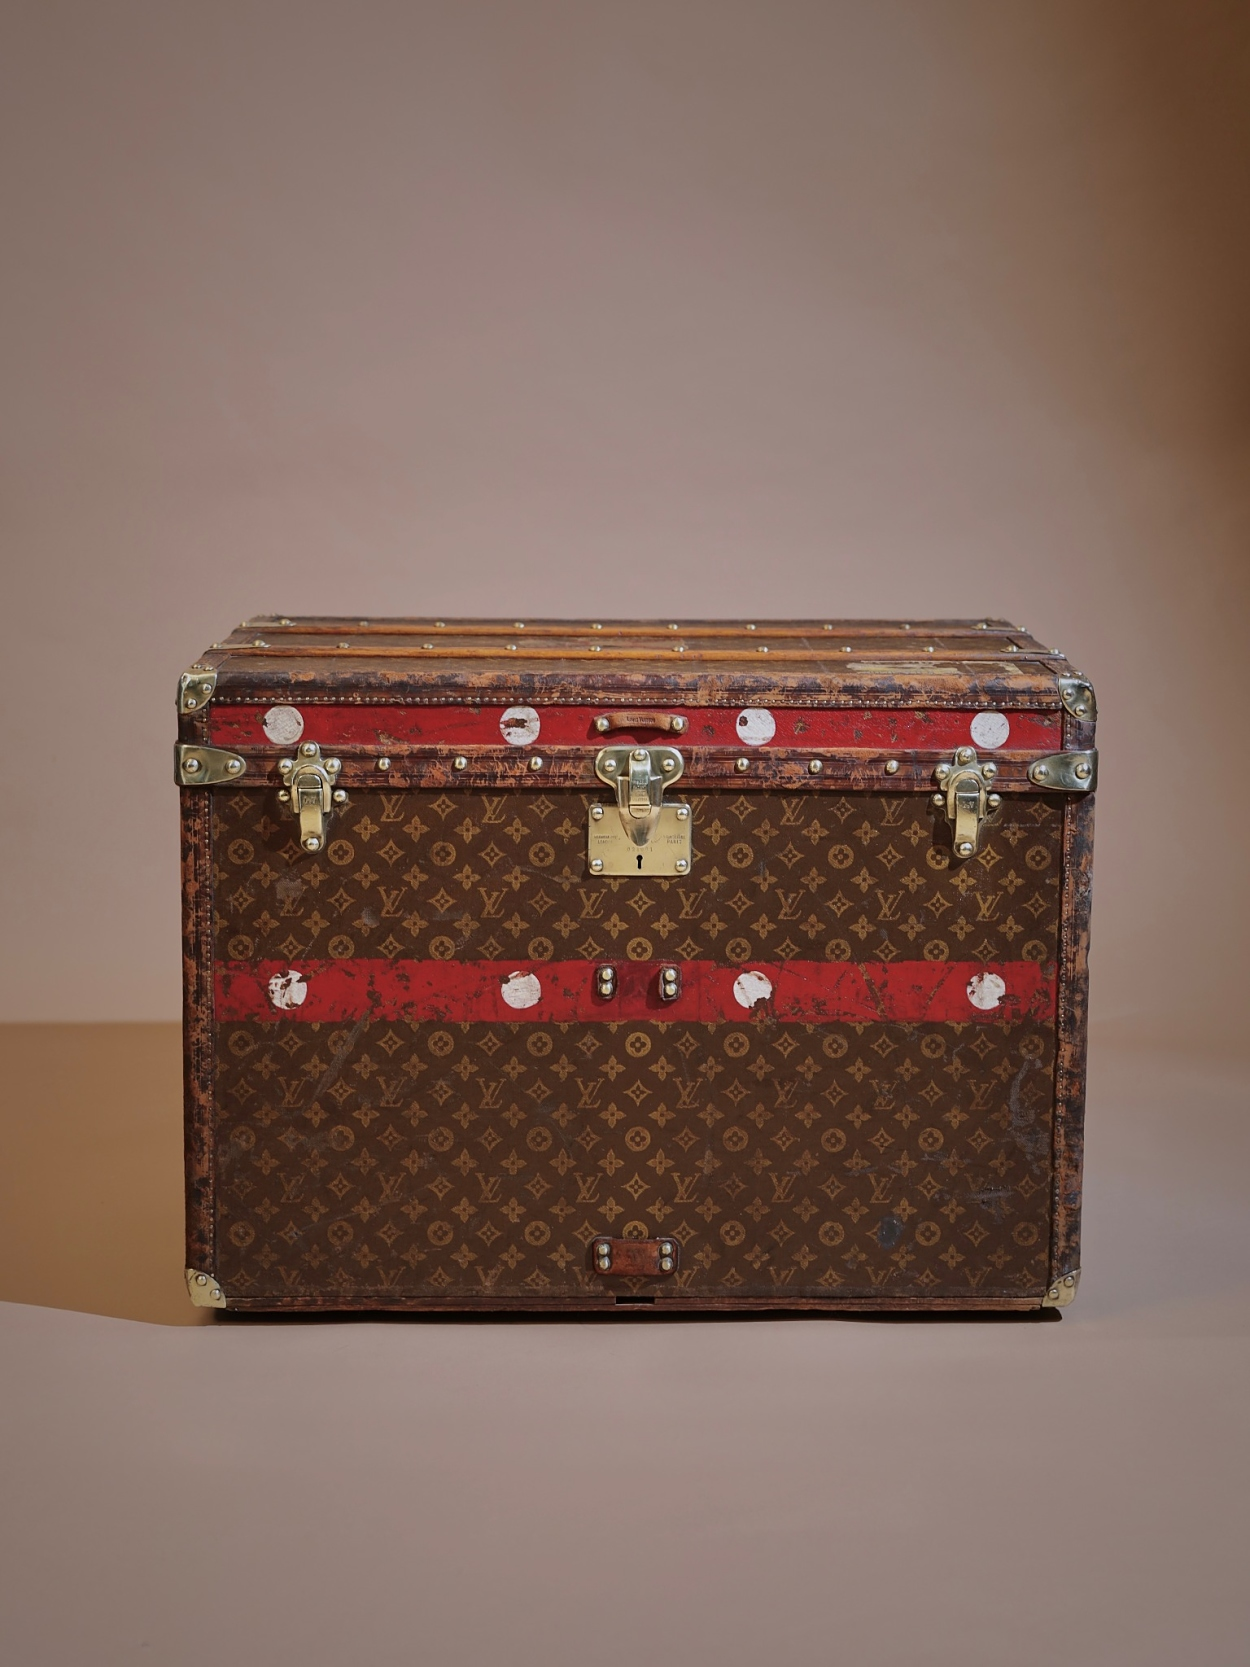 the-well-traveled-trunk-louis-vuitton-thumbnail-product-5720-1